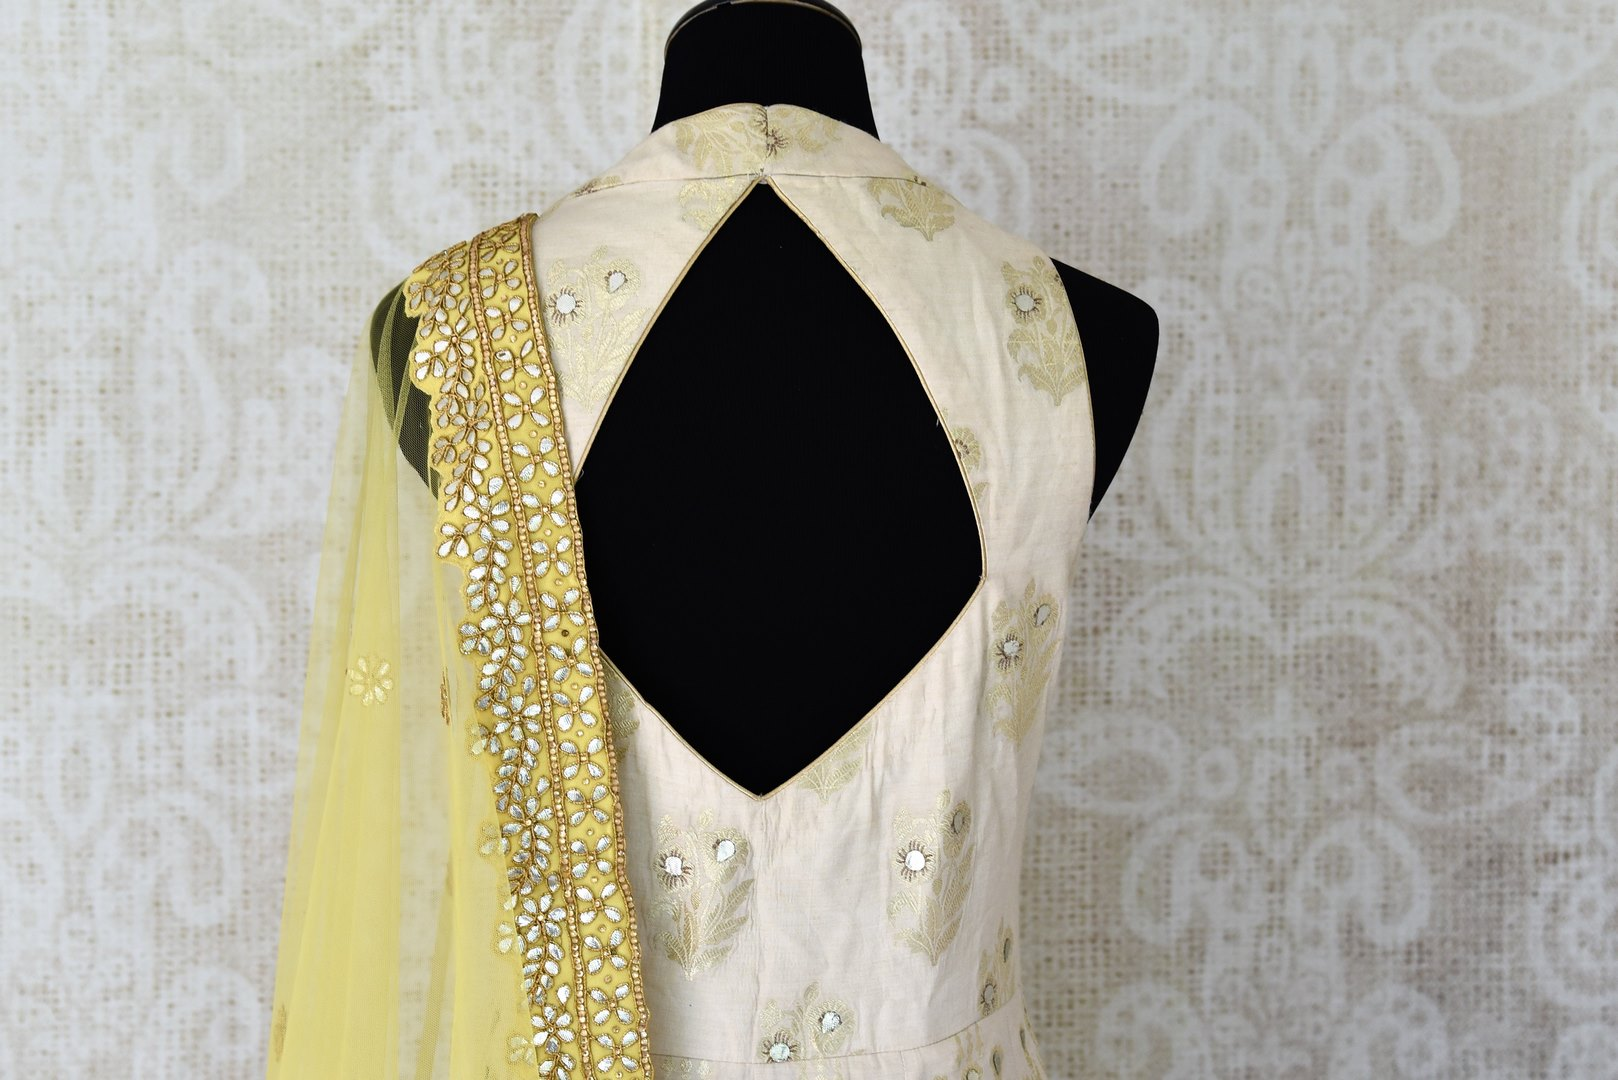 Buy white gota patti embroidery muga Banarasi suit with dupatta online in USA. Adorn your style with a range of exquisite Kanchipuram silk saris from Pure Elegance clothing store in USA. We have an exquisite range of Indian designer sarees, silk sarees, Banarasi saris and many other varieties also available at our online store.-back